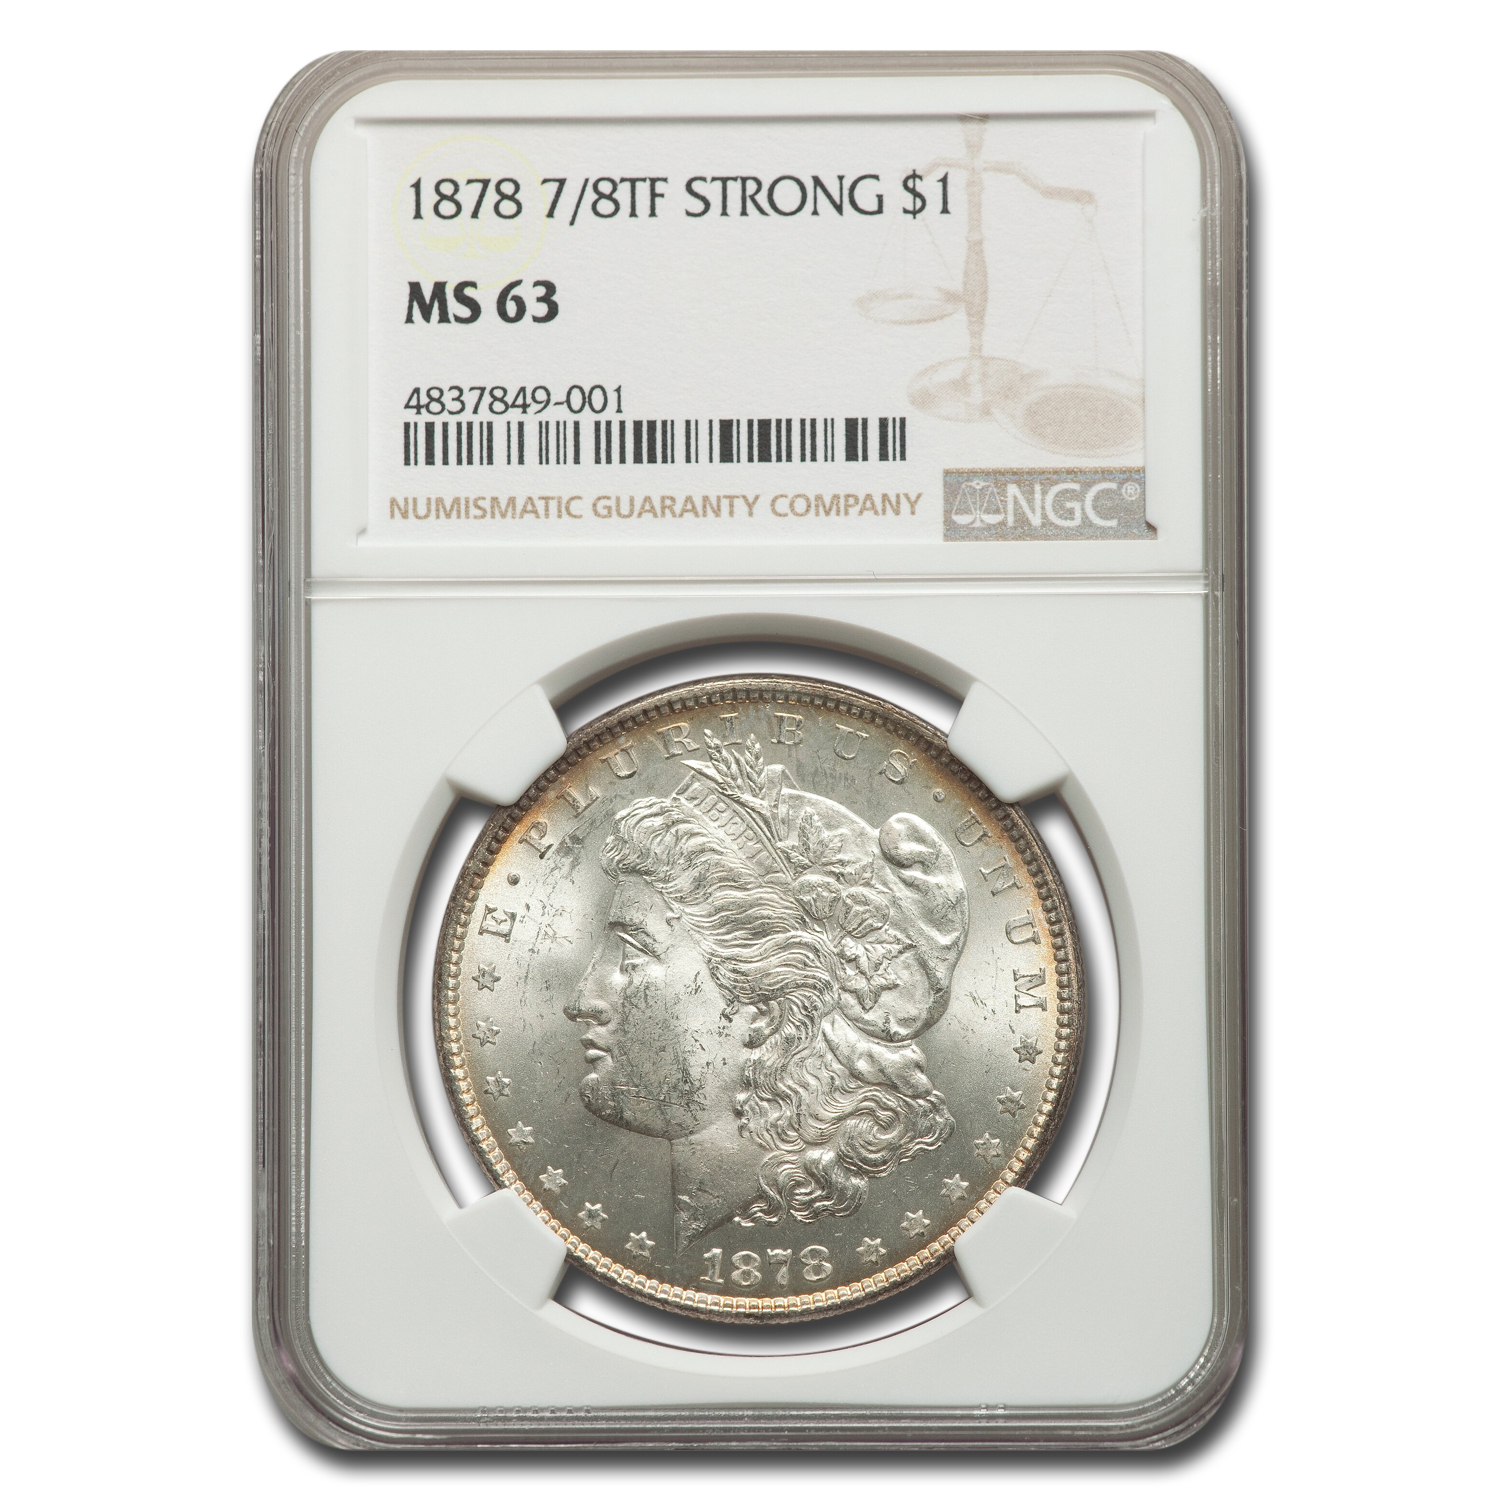 1878 Morgan Dollar - 7/8 Tailfeathers Strong MS-63 NGC